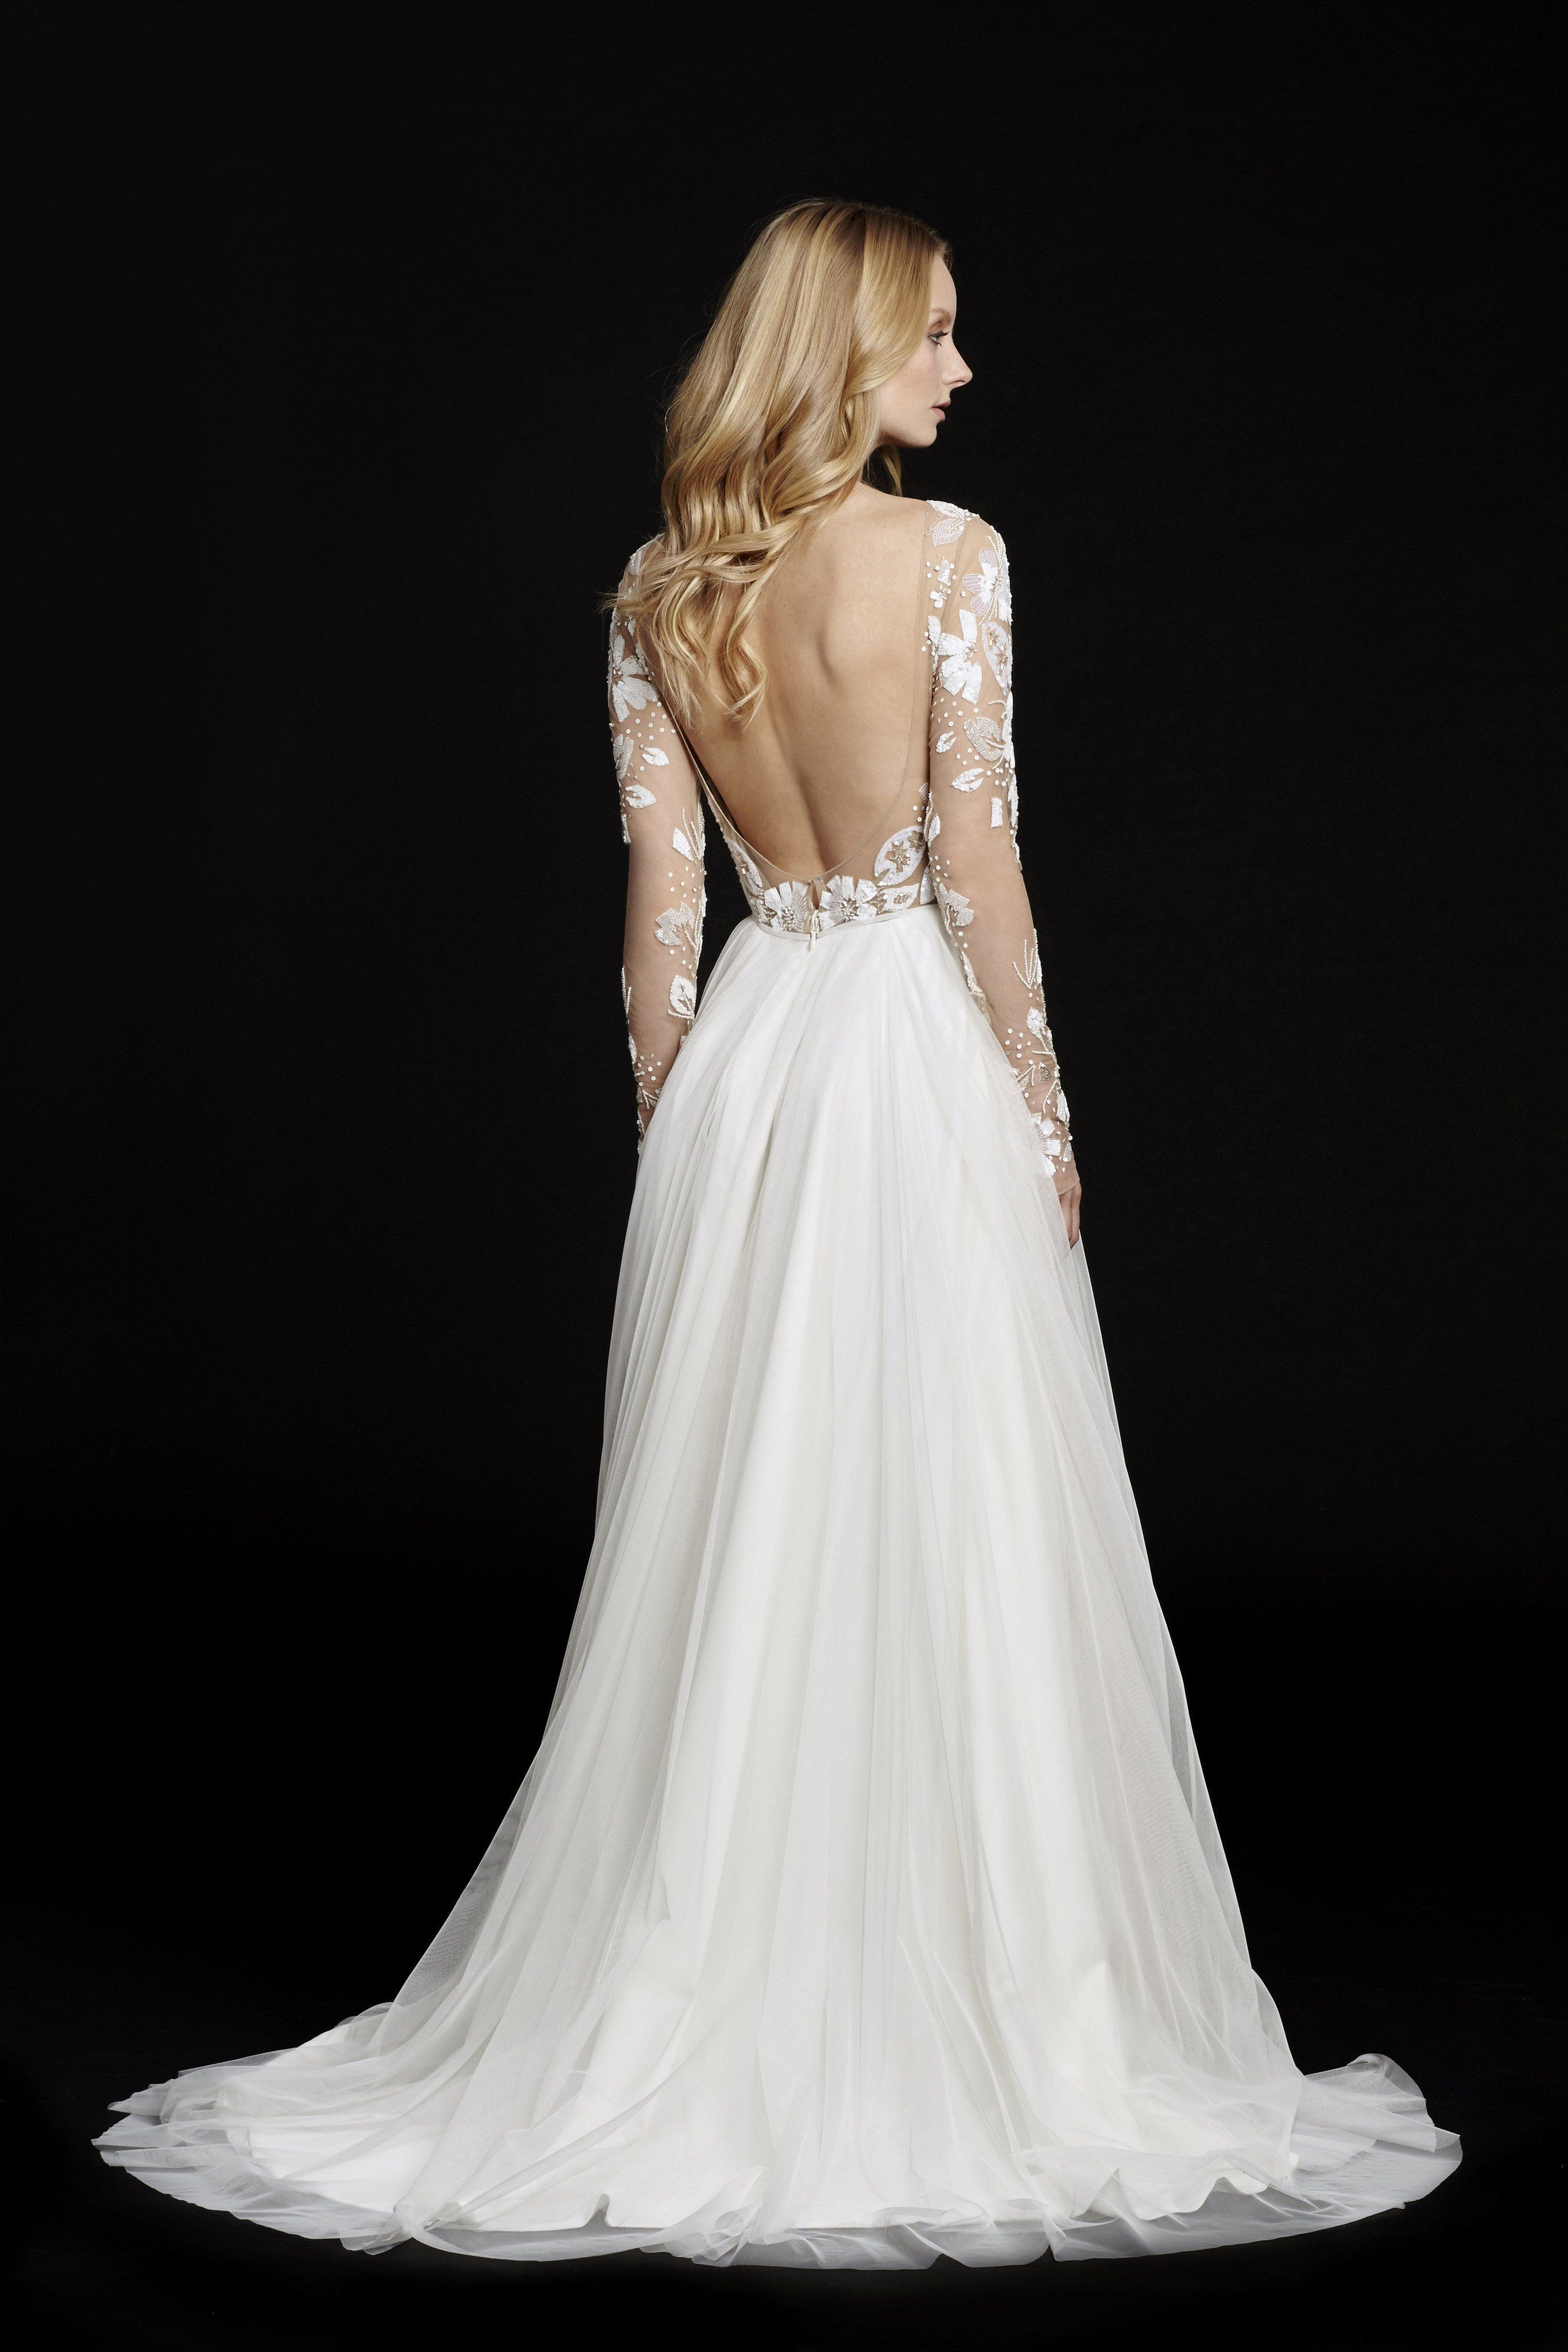 remmington in products pinterest wedding dresses